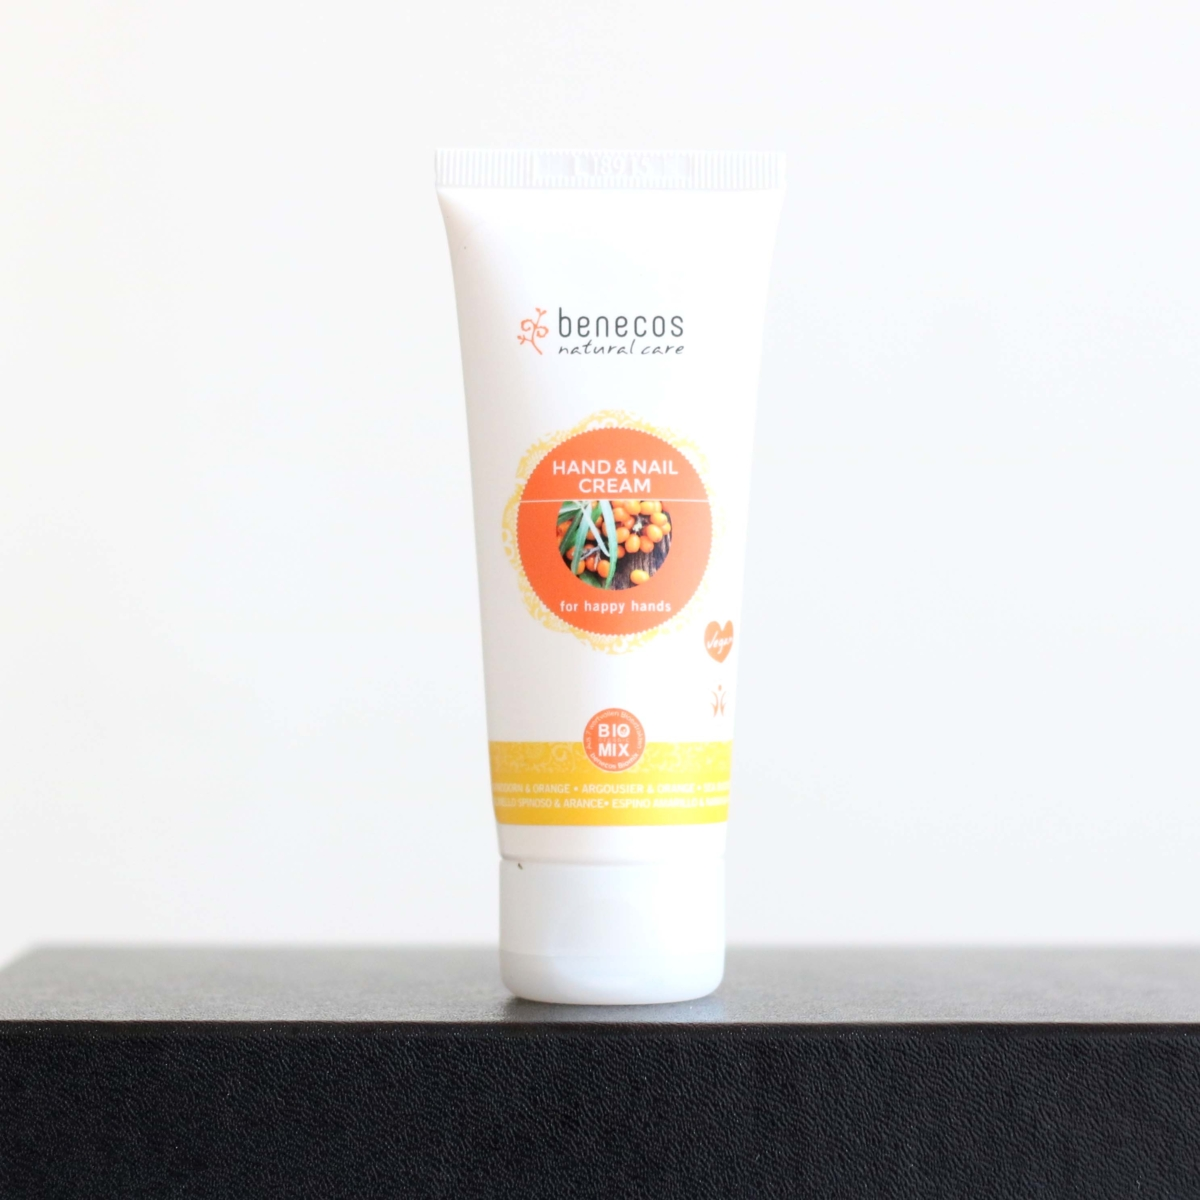 Latest in Beauty Build Your Own Box Review - Benecos Hand & Nail Cream